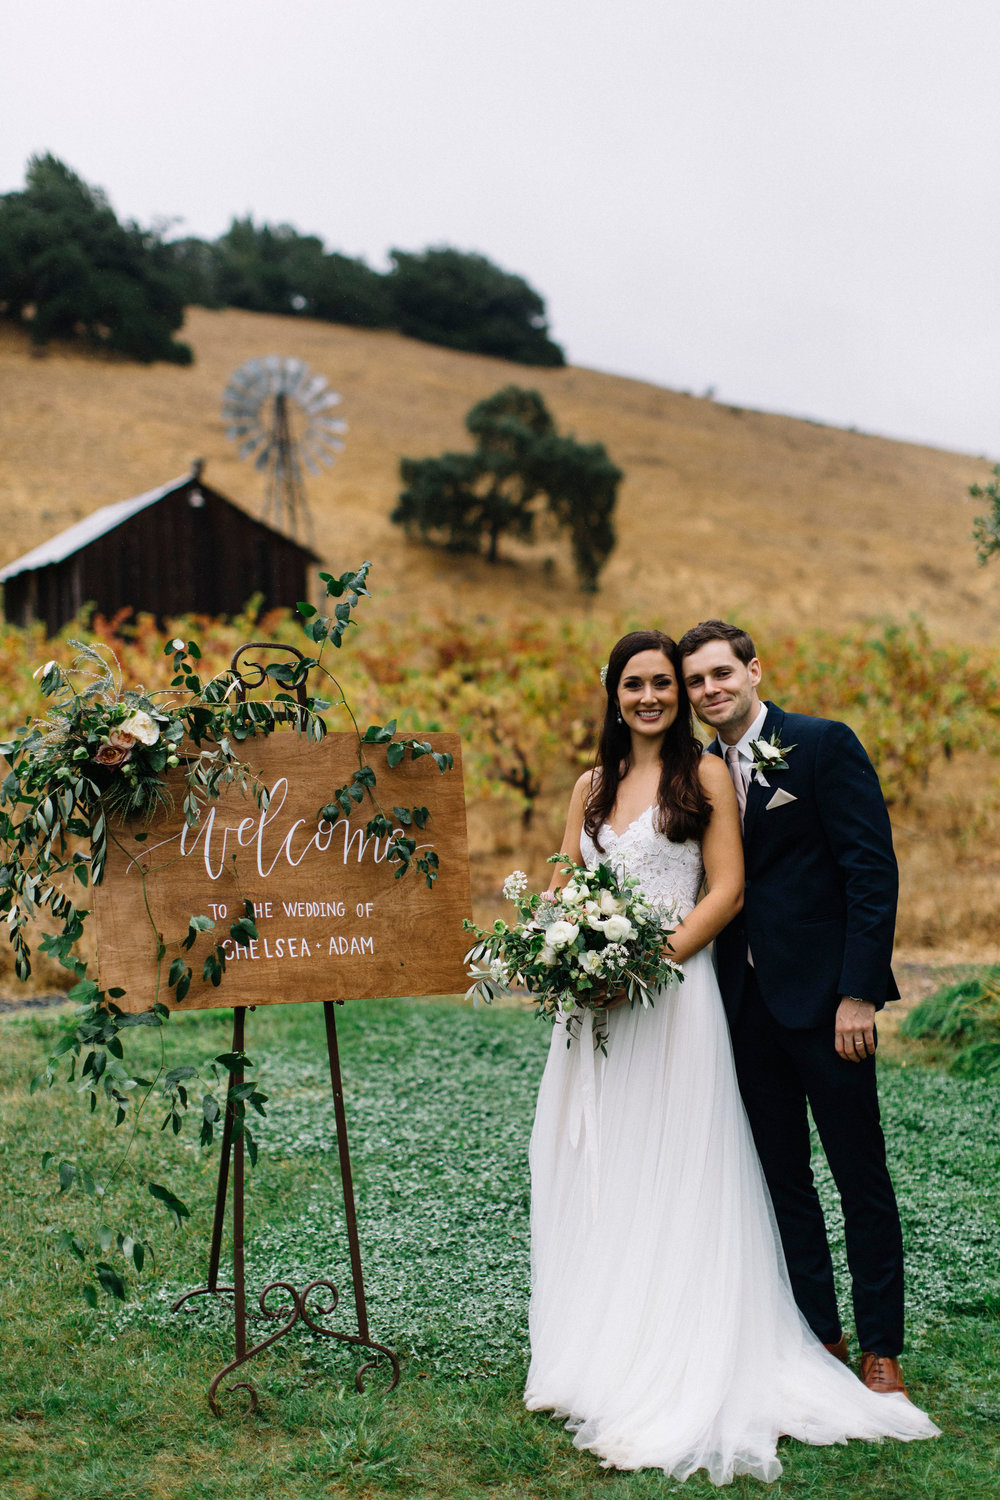 Healdsburg wedding flowers by Venn Floral at Ru's Farm in Healdsburg, California photographed by Lucille Lawrence with Heald Wedding Consulting.